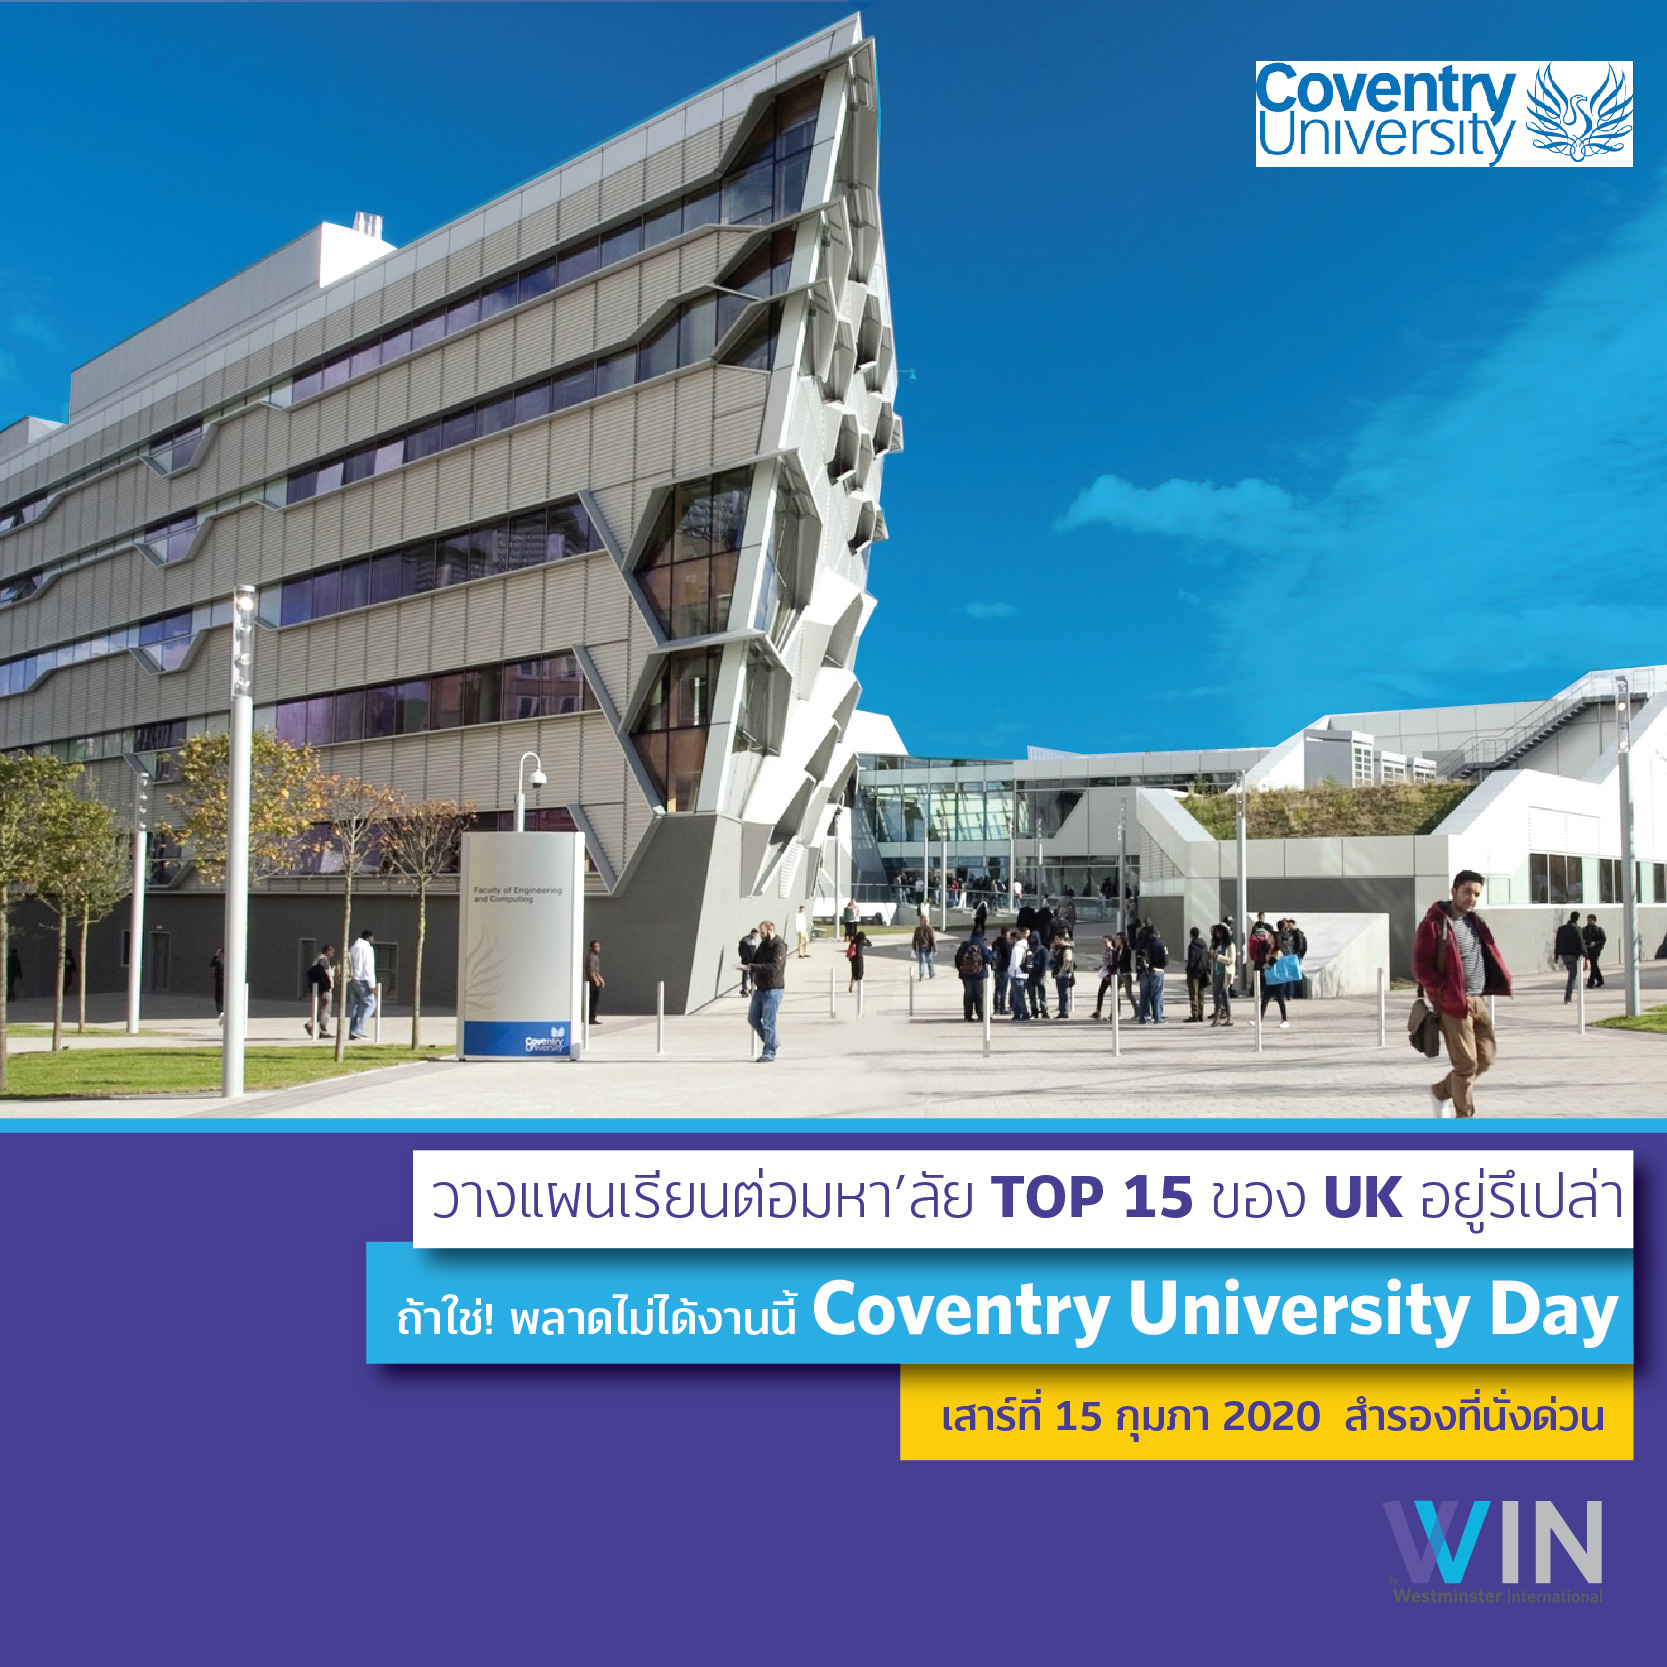 Coventry University Day